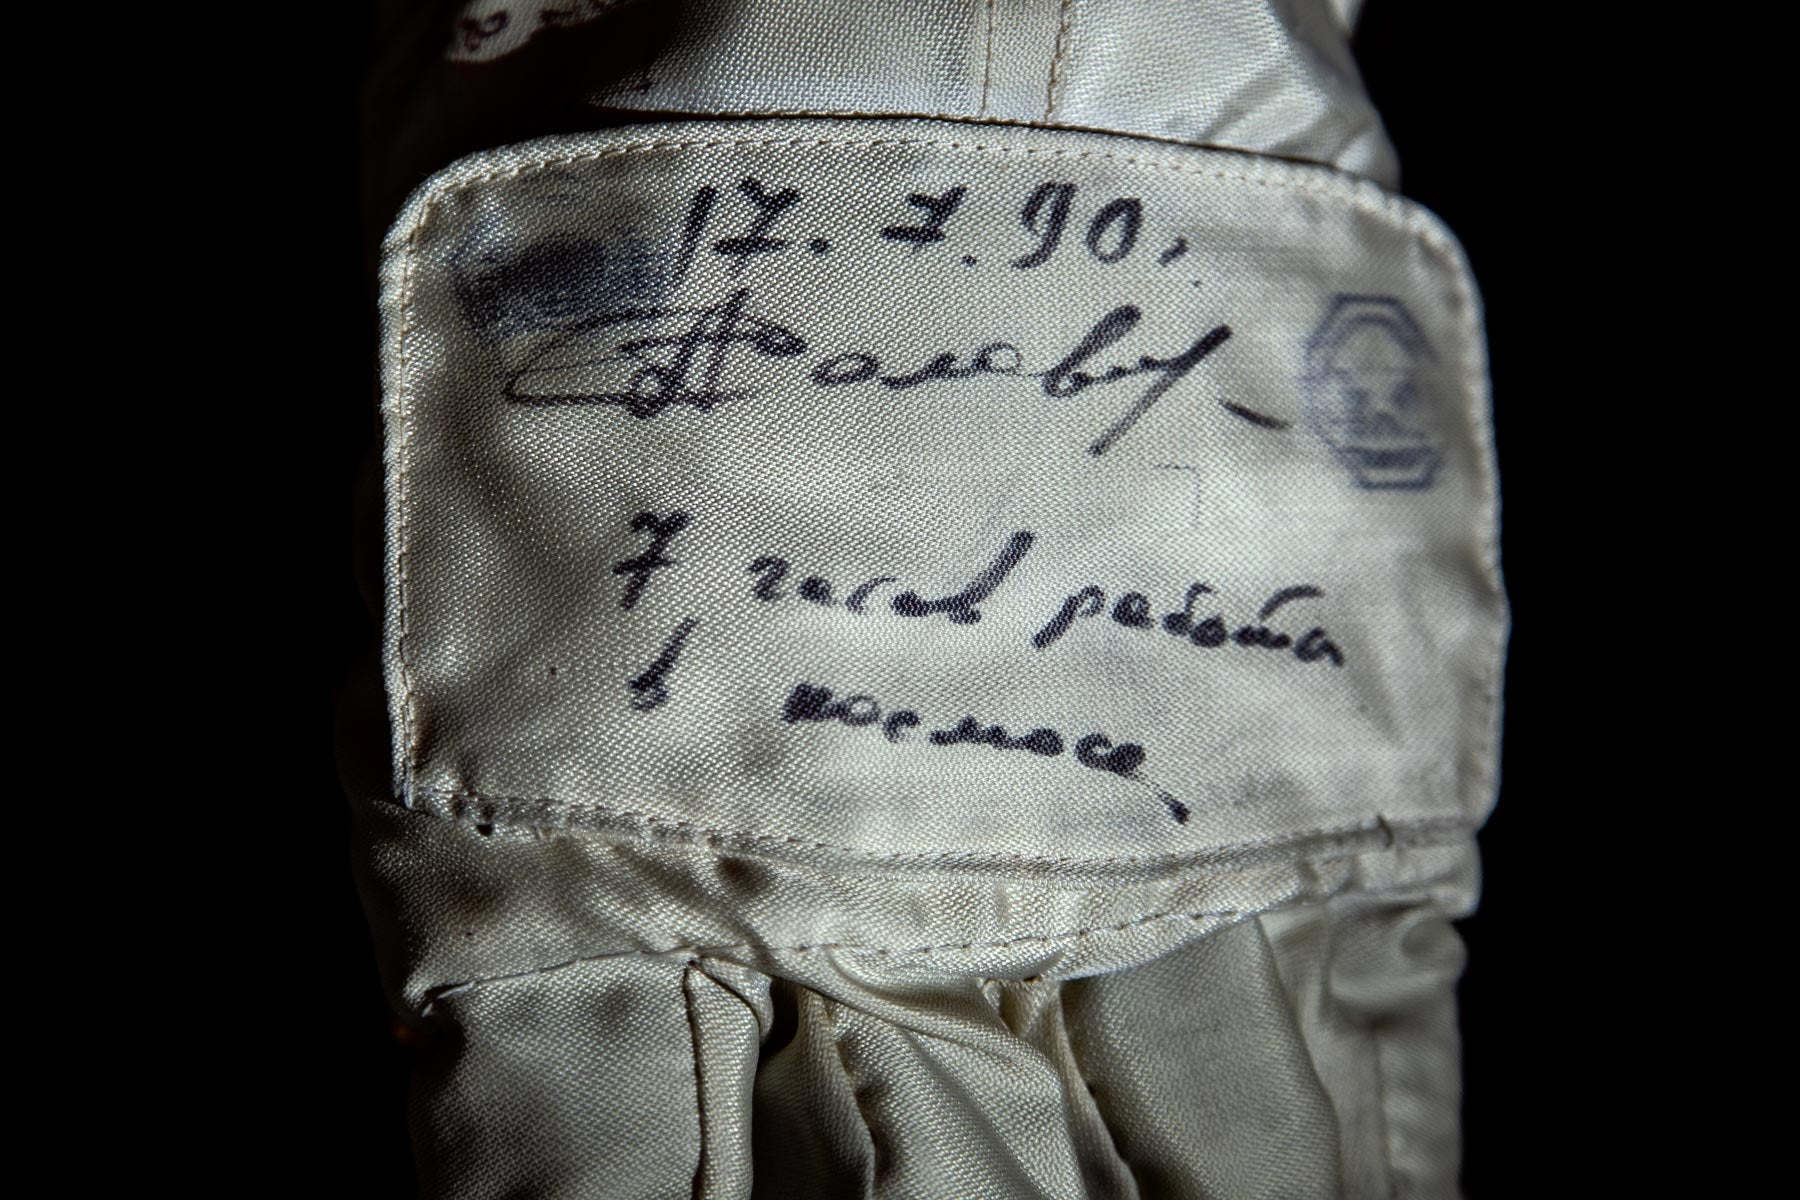 NASA 60th anniversary, astronaut gloves, Anatoly Solovyev gloves